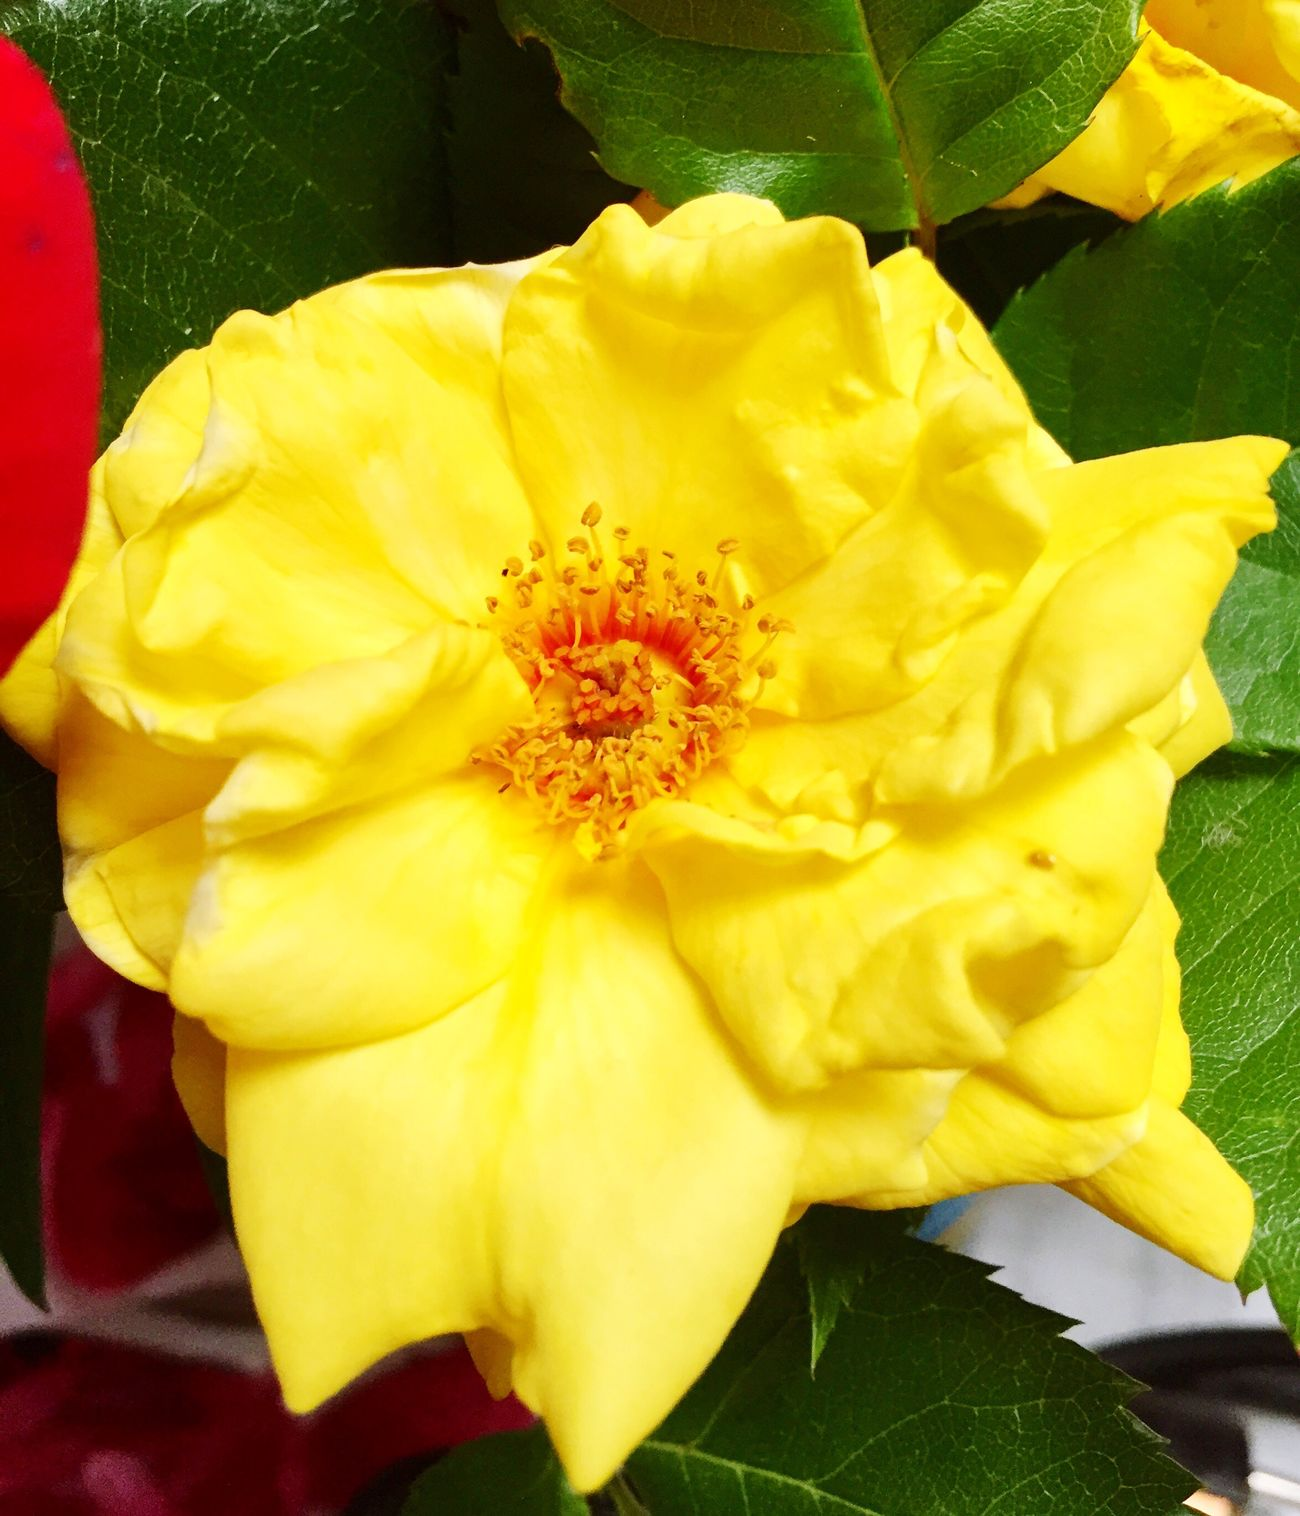 Flower Yellow Petal Fragility Flower Head Freshness Close-up Beauty In Nature No People Nature Day Outdoors Flowers Rosa Yellow Flower Yellow Color Yellow Flowers Yellow Rose Gelb Blumen Rose🌹 цветок  желтый Yellow Roses Roses🌹